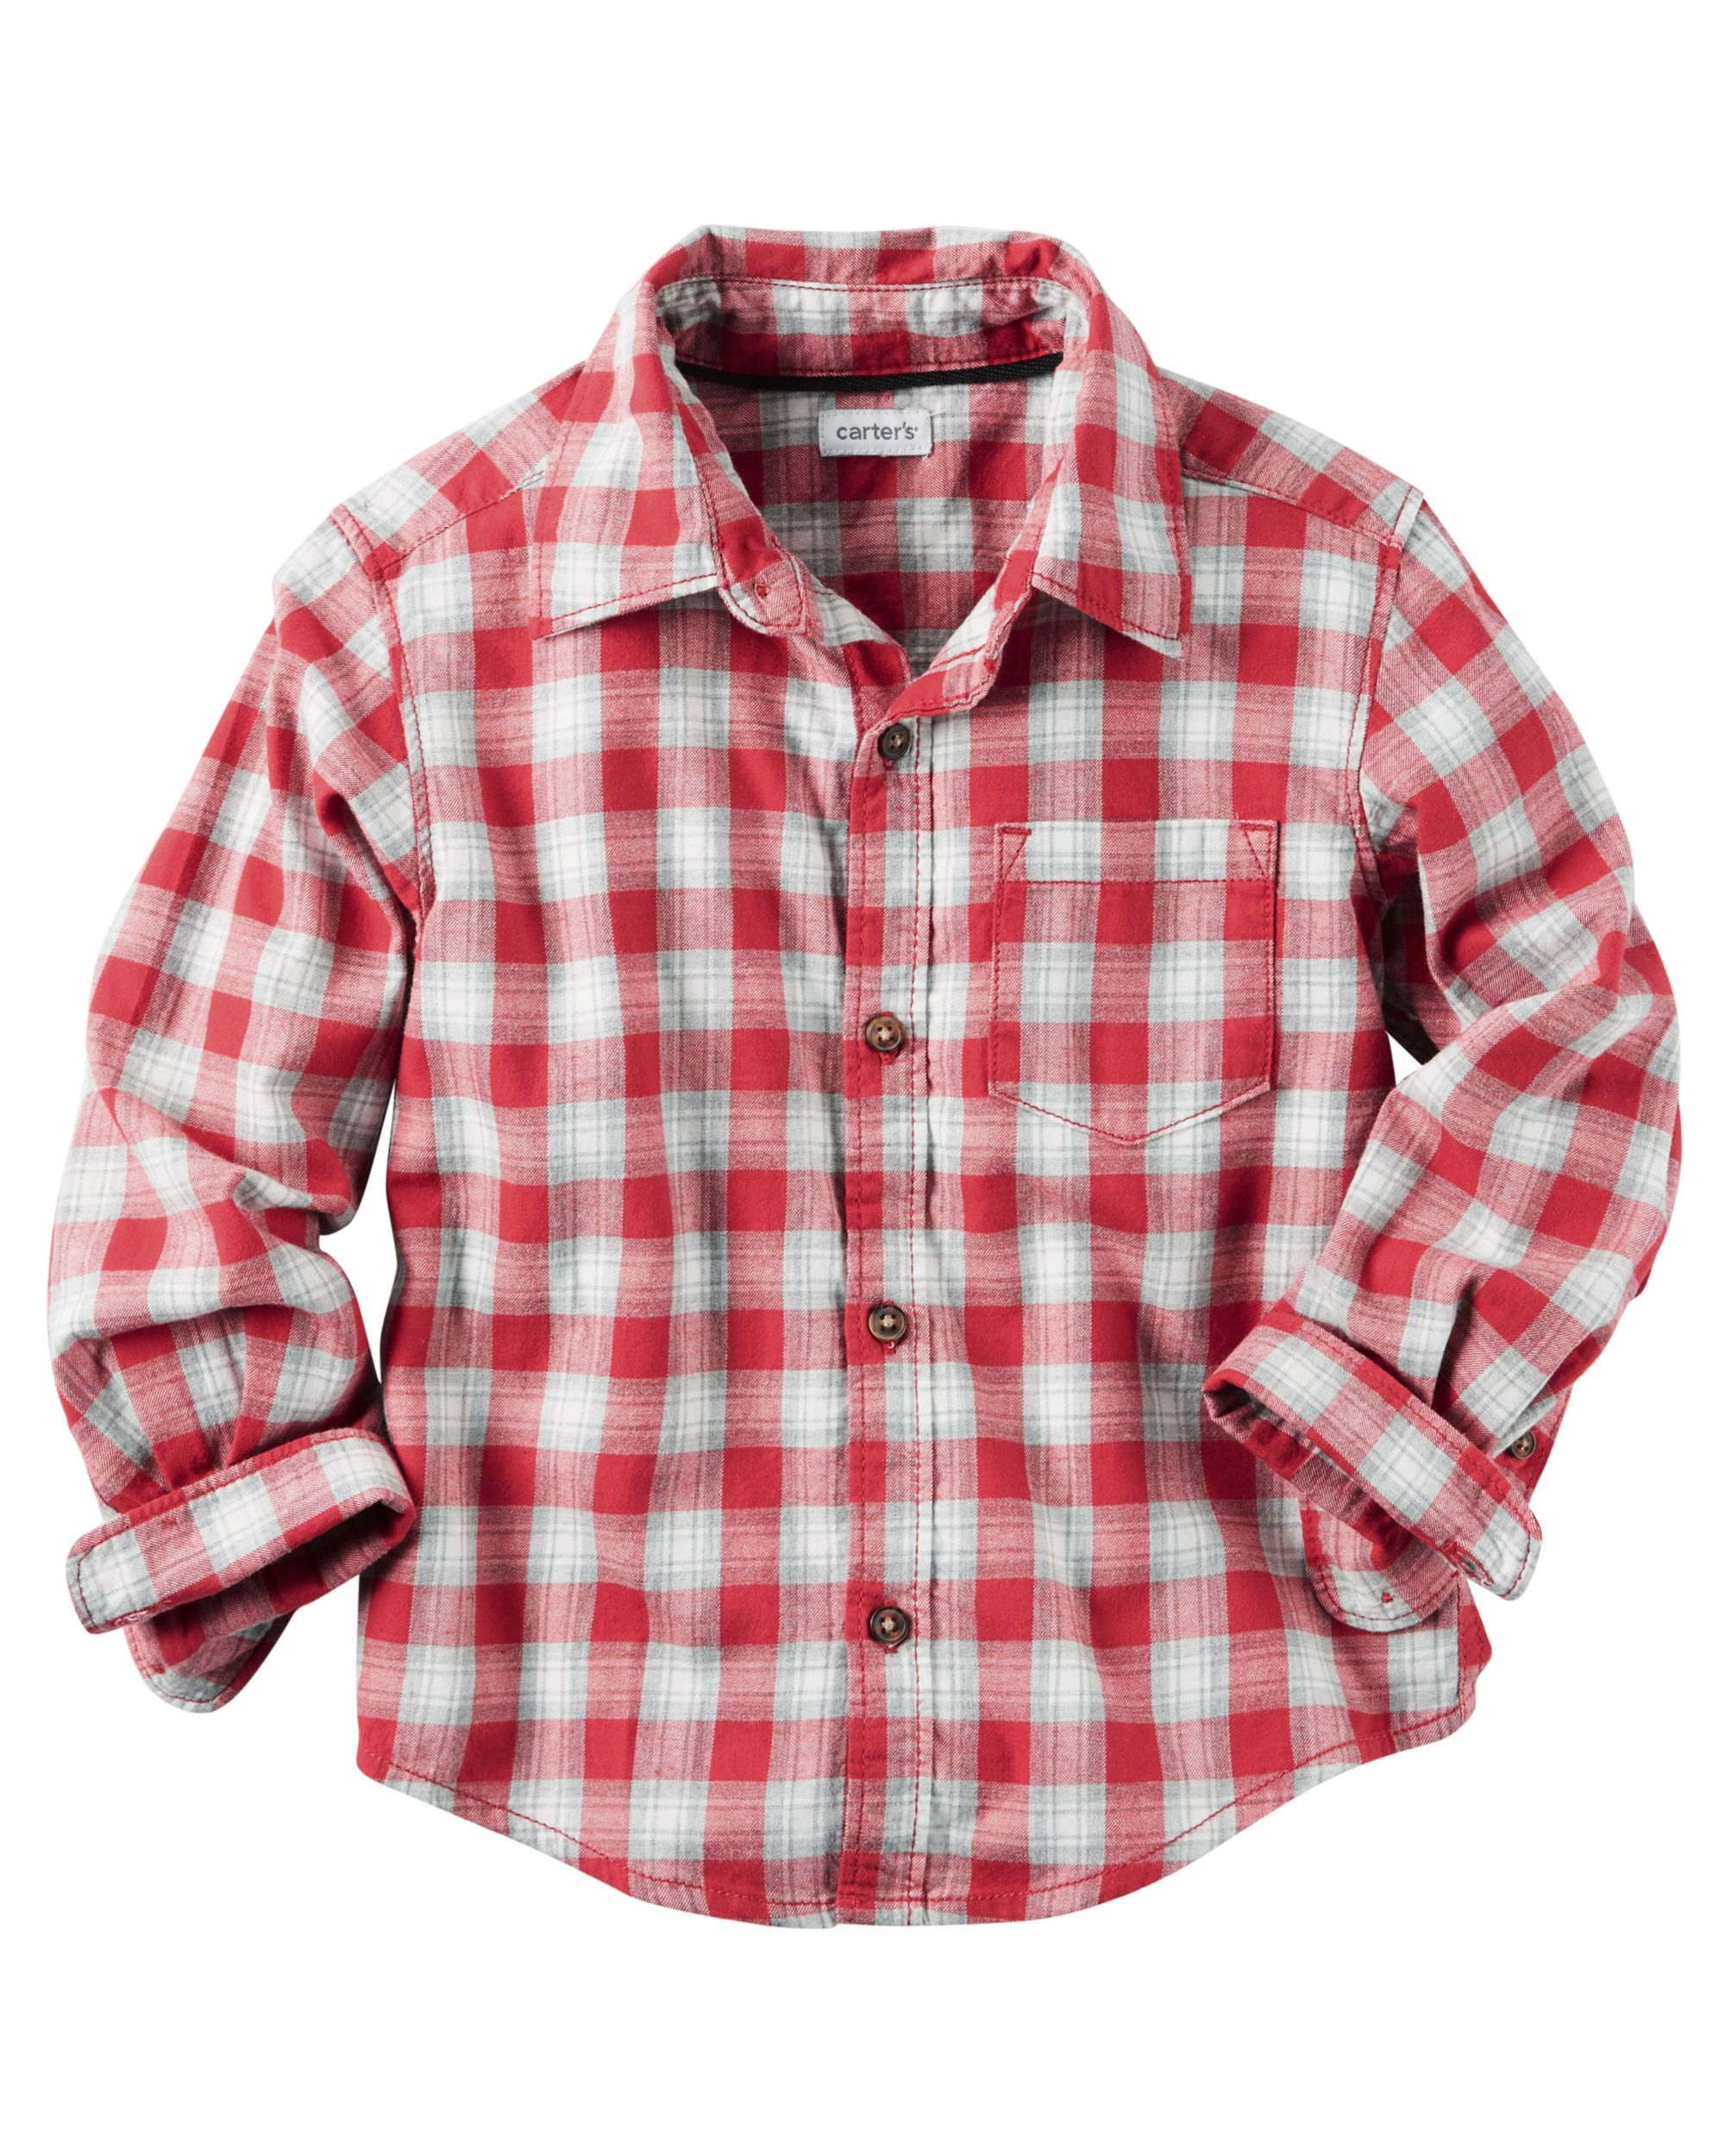 73c32013ee7a Toddler Boy Plaid Button-Front Shirt from Carters.com. Shop clothing    accessories from a trusted name in kids